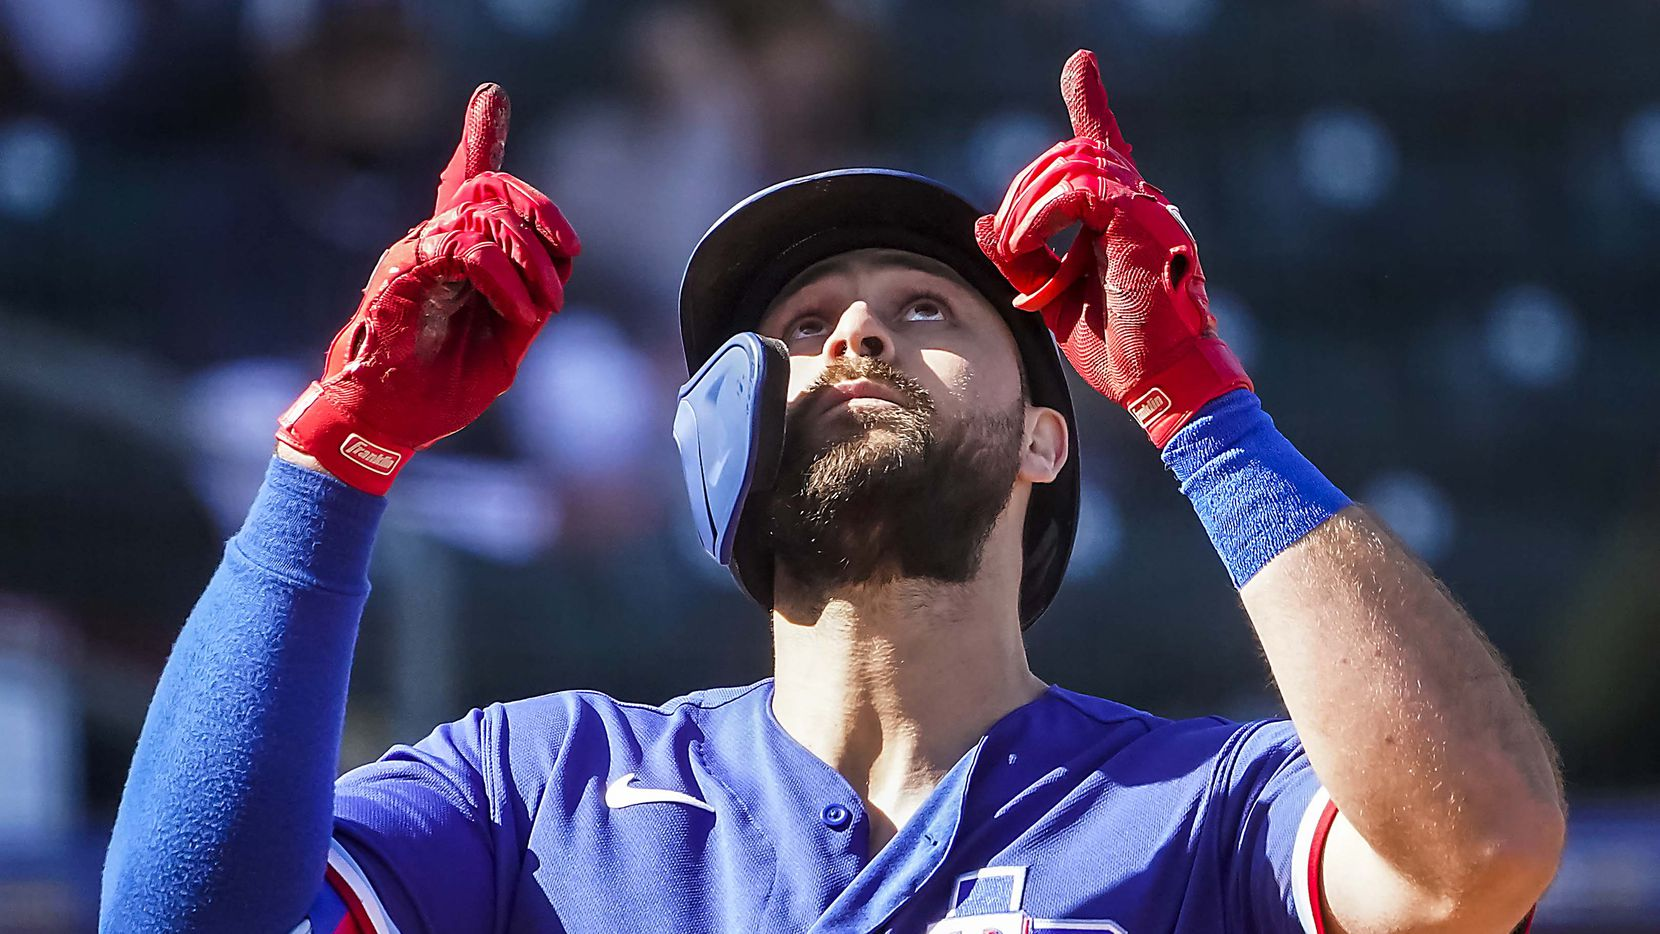 Texas Rangers outfielder Joey Gallo celebrates after hitting a 3-run home run during the fifth inning of a spring training game against the San Diego Padres at Surprise Stadium on Thursday, March 4, 2021, in Surprise, Ariz.